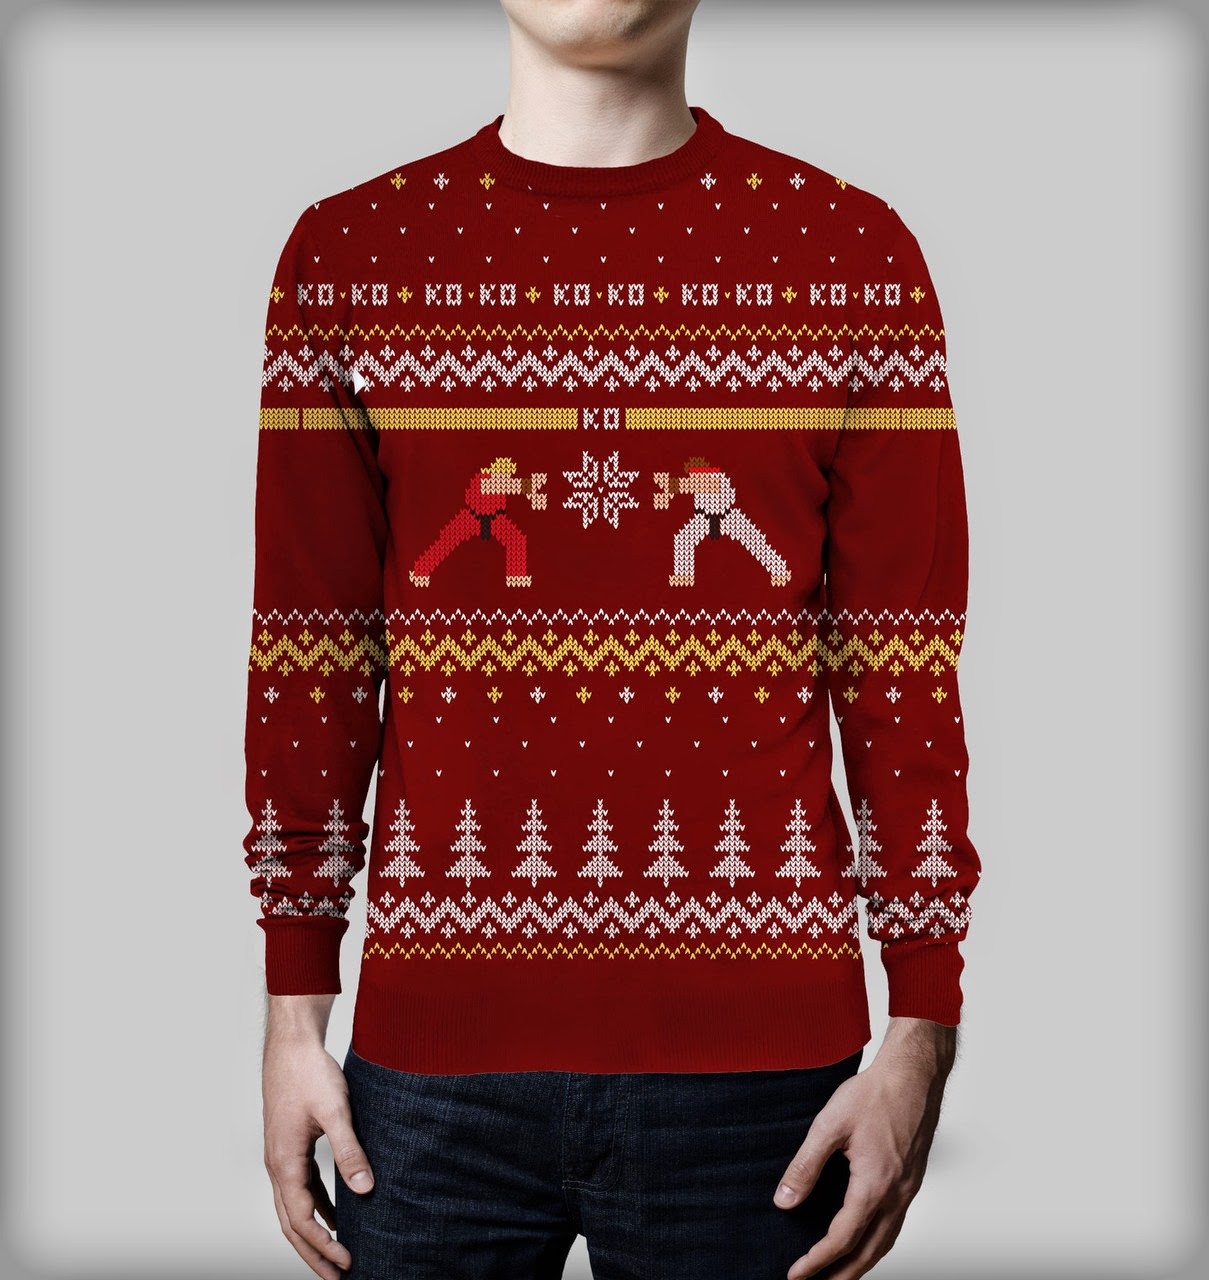 Anime Christmas Sweater.Things To Do In Los Angeles Holiday Ho Down Sweaters And Socks